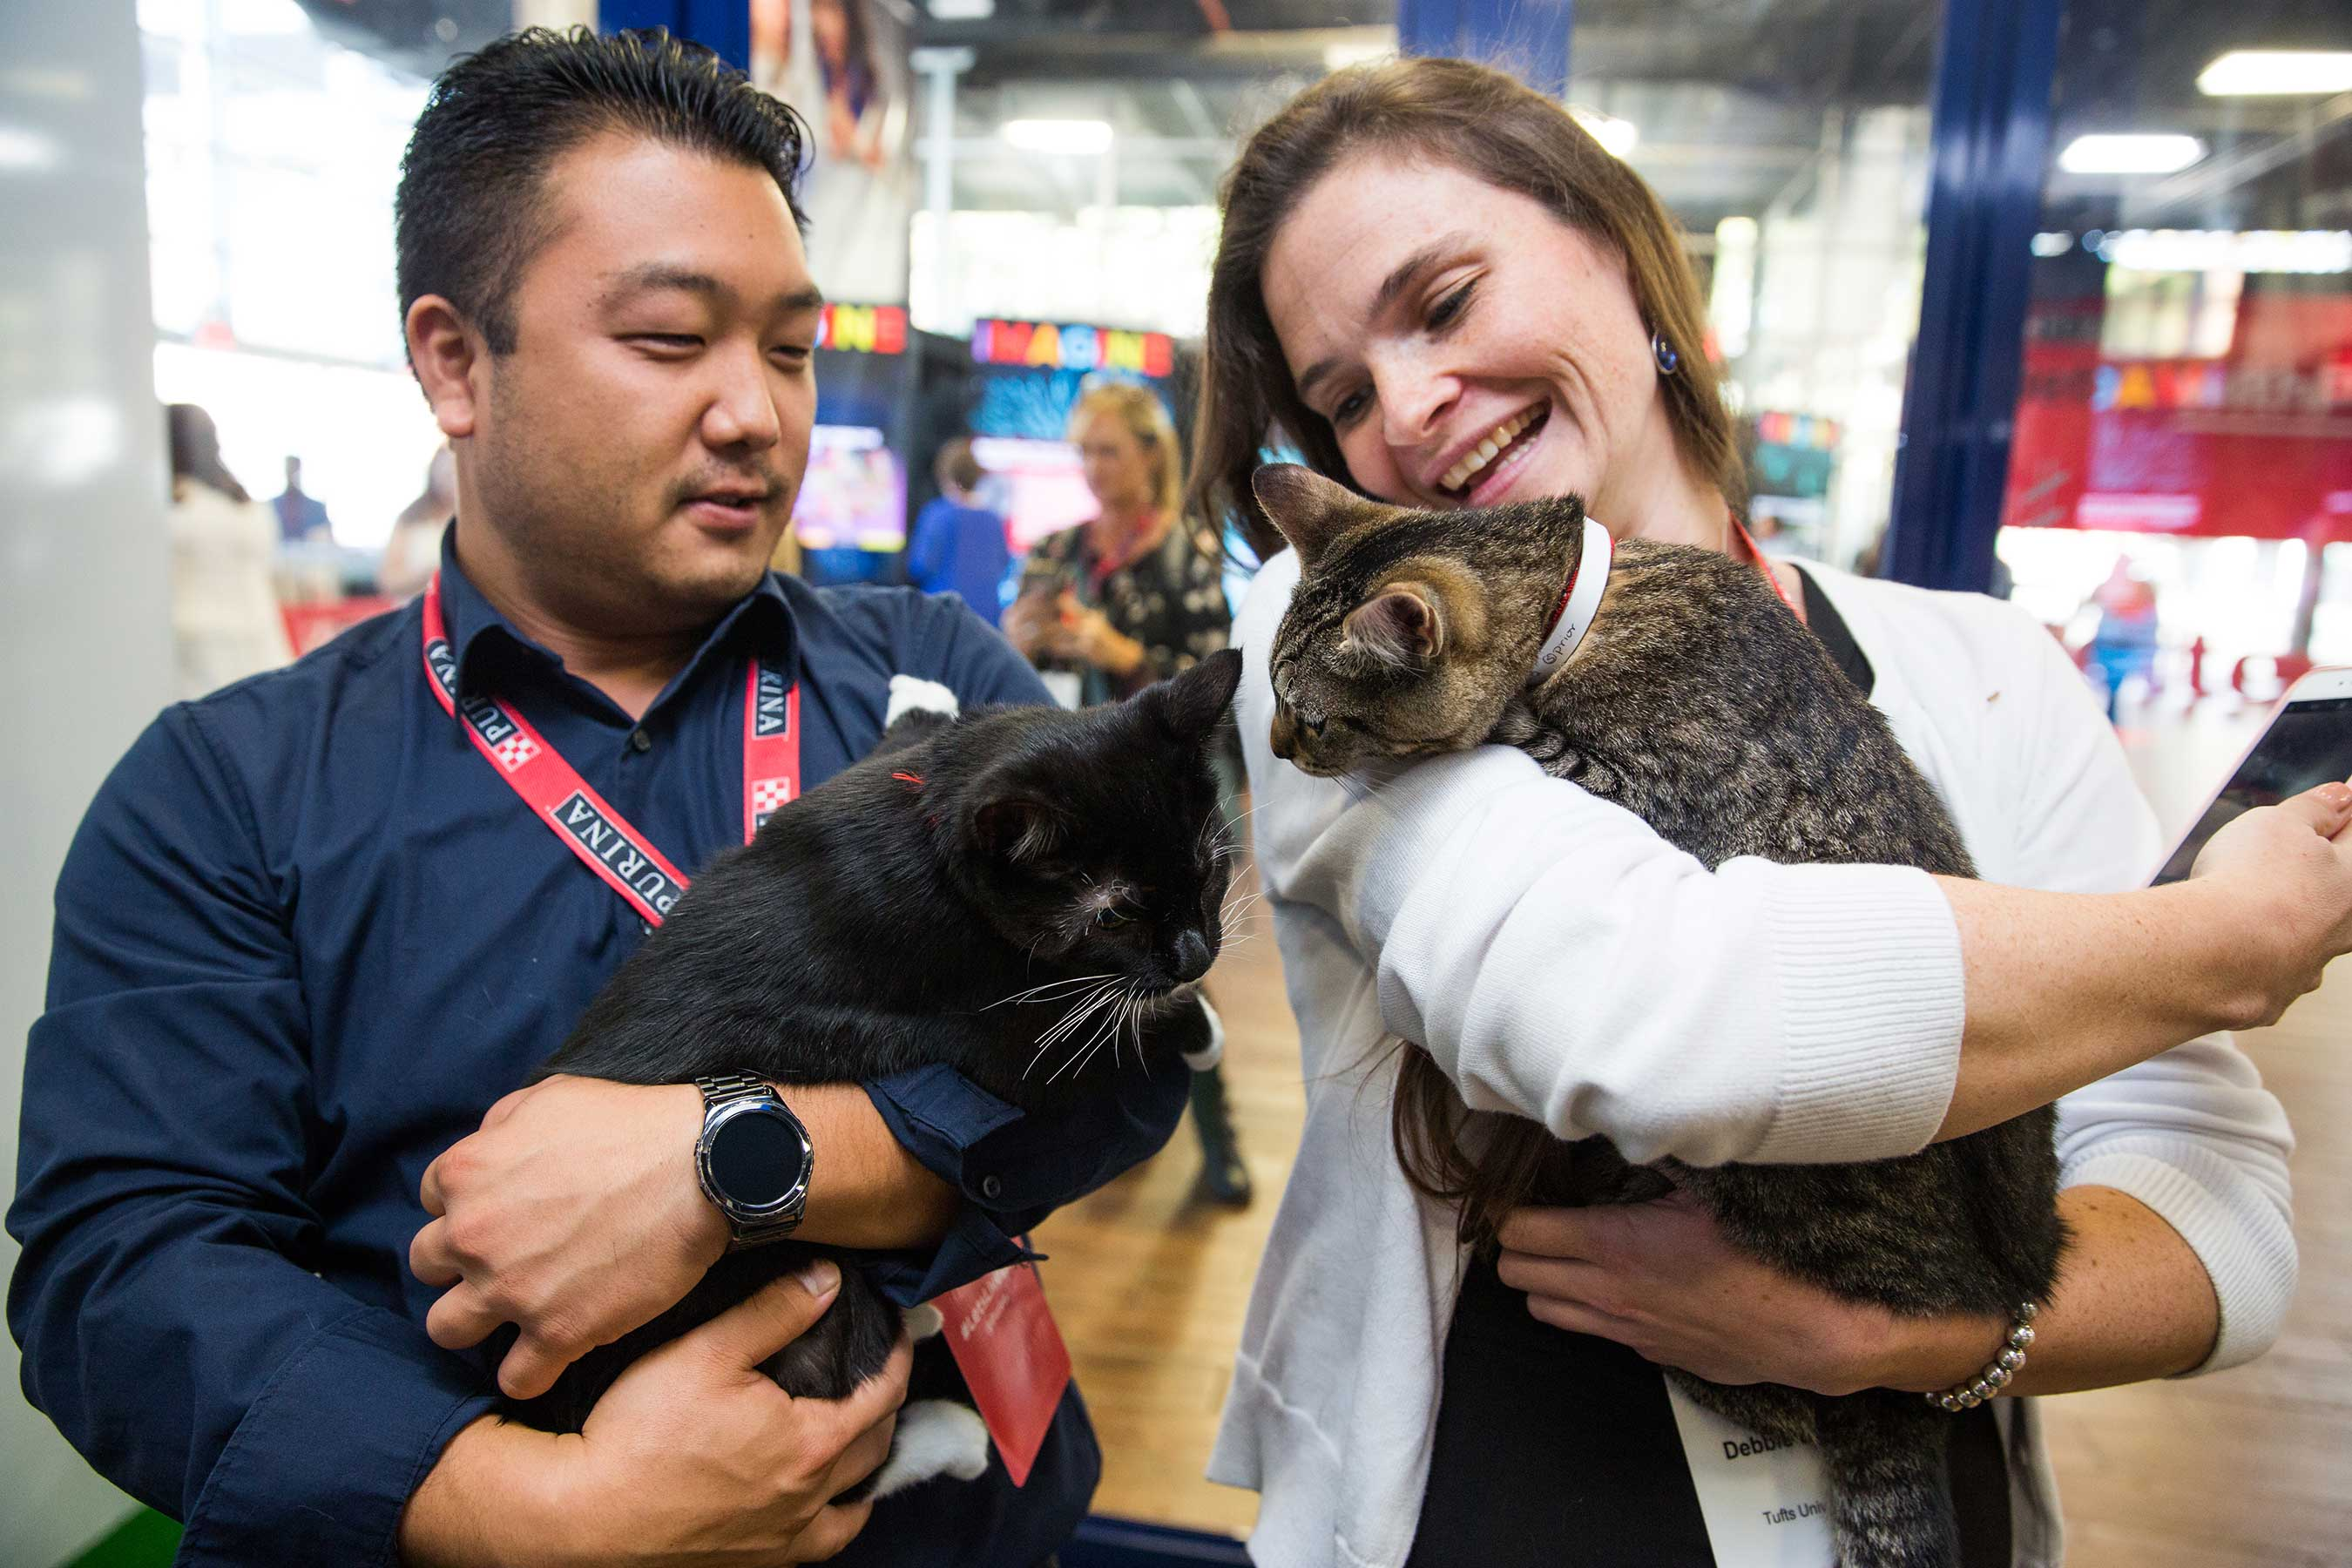 Attendees learned about the advantages of pet therapy and got a first-hand look at how pets impact our emotional well-being while playing with adoptable pets from North Shore Animal League America.